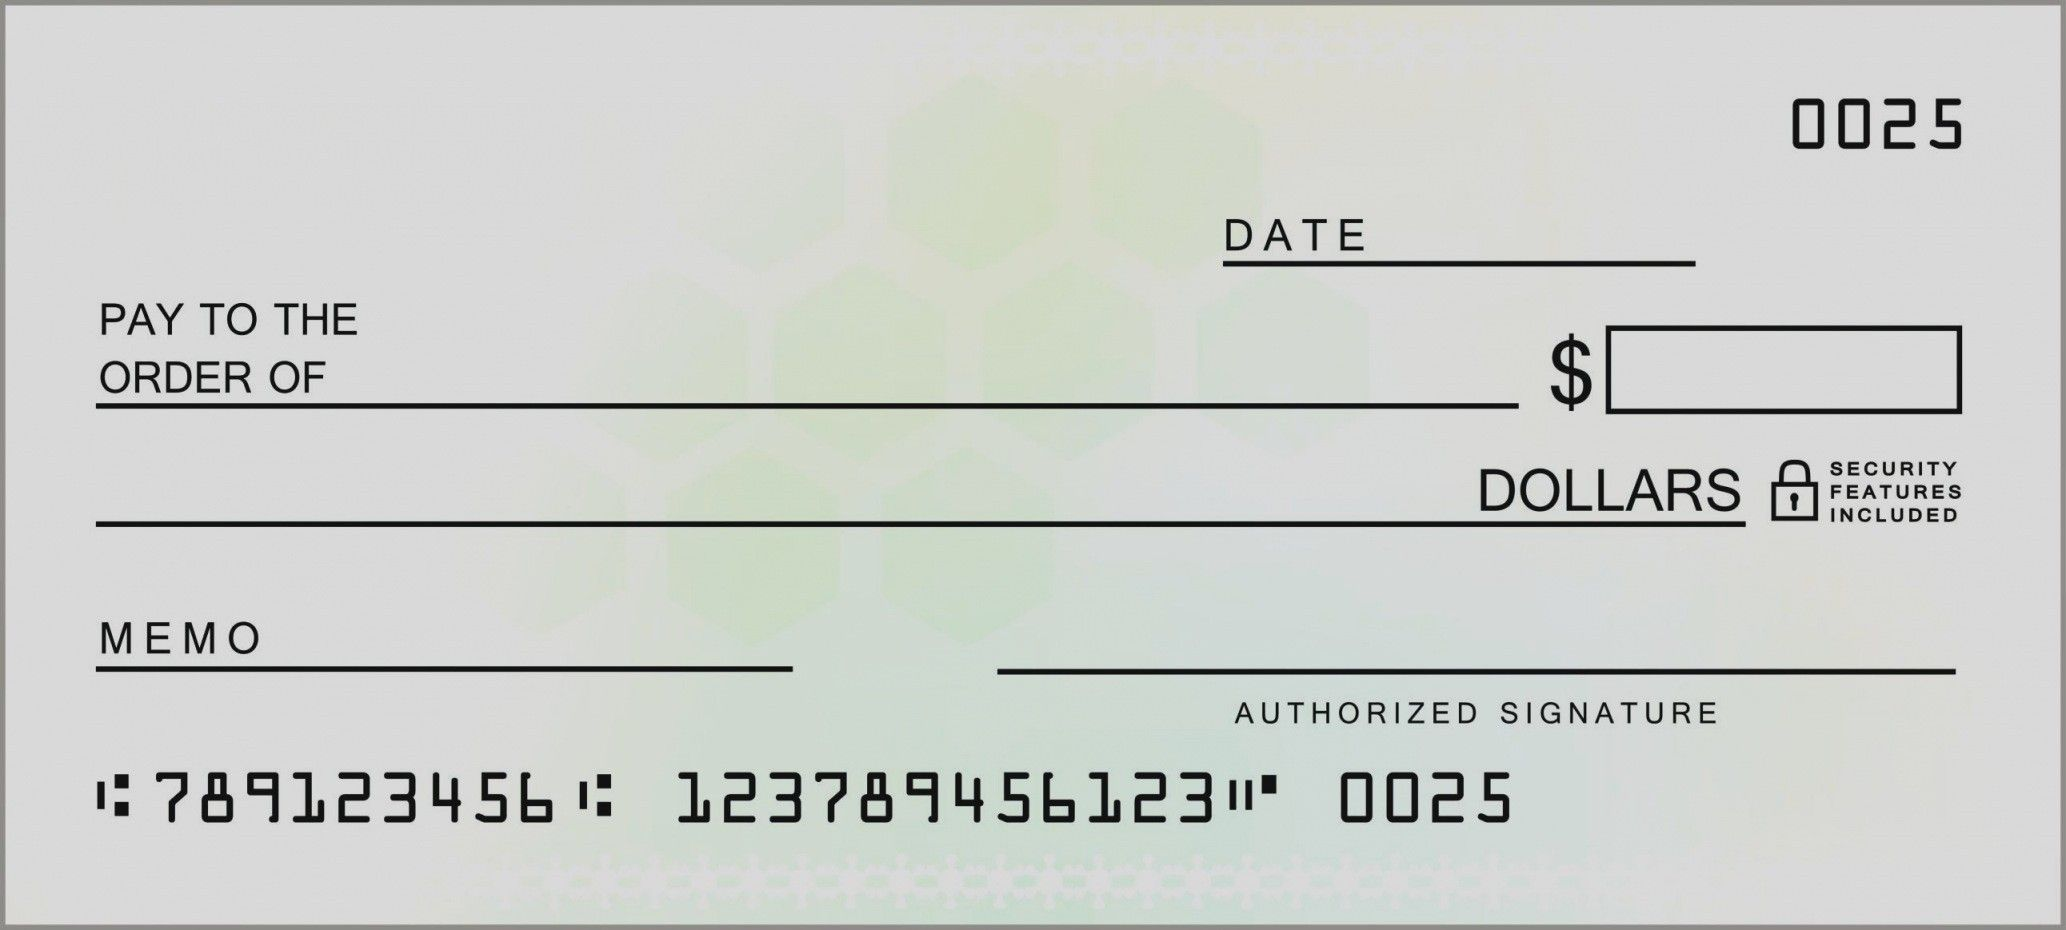 Amazing Fake Blank Check Template Word Free 10 Presentation Mychjp Blank Check Business Template Business Checks Large check for presentation template